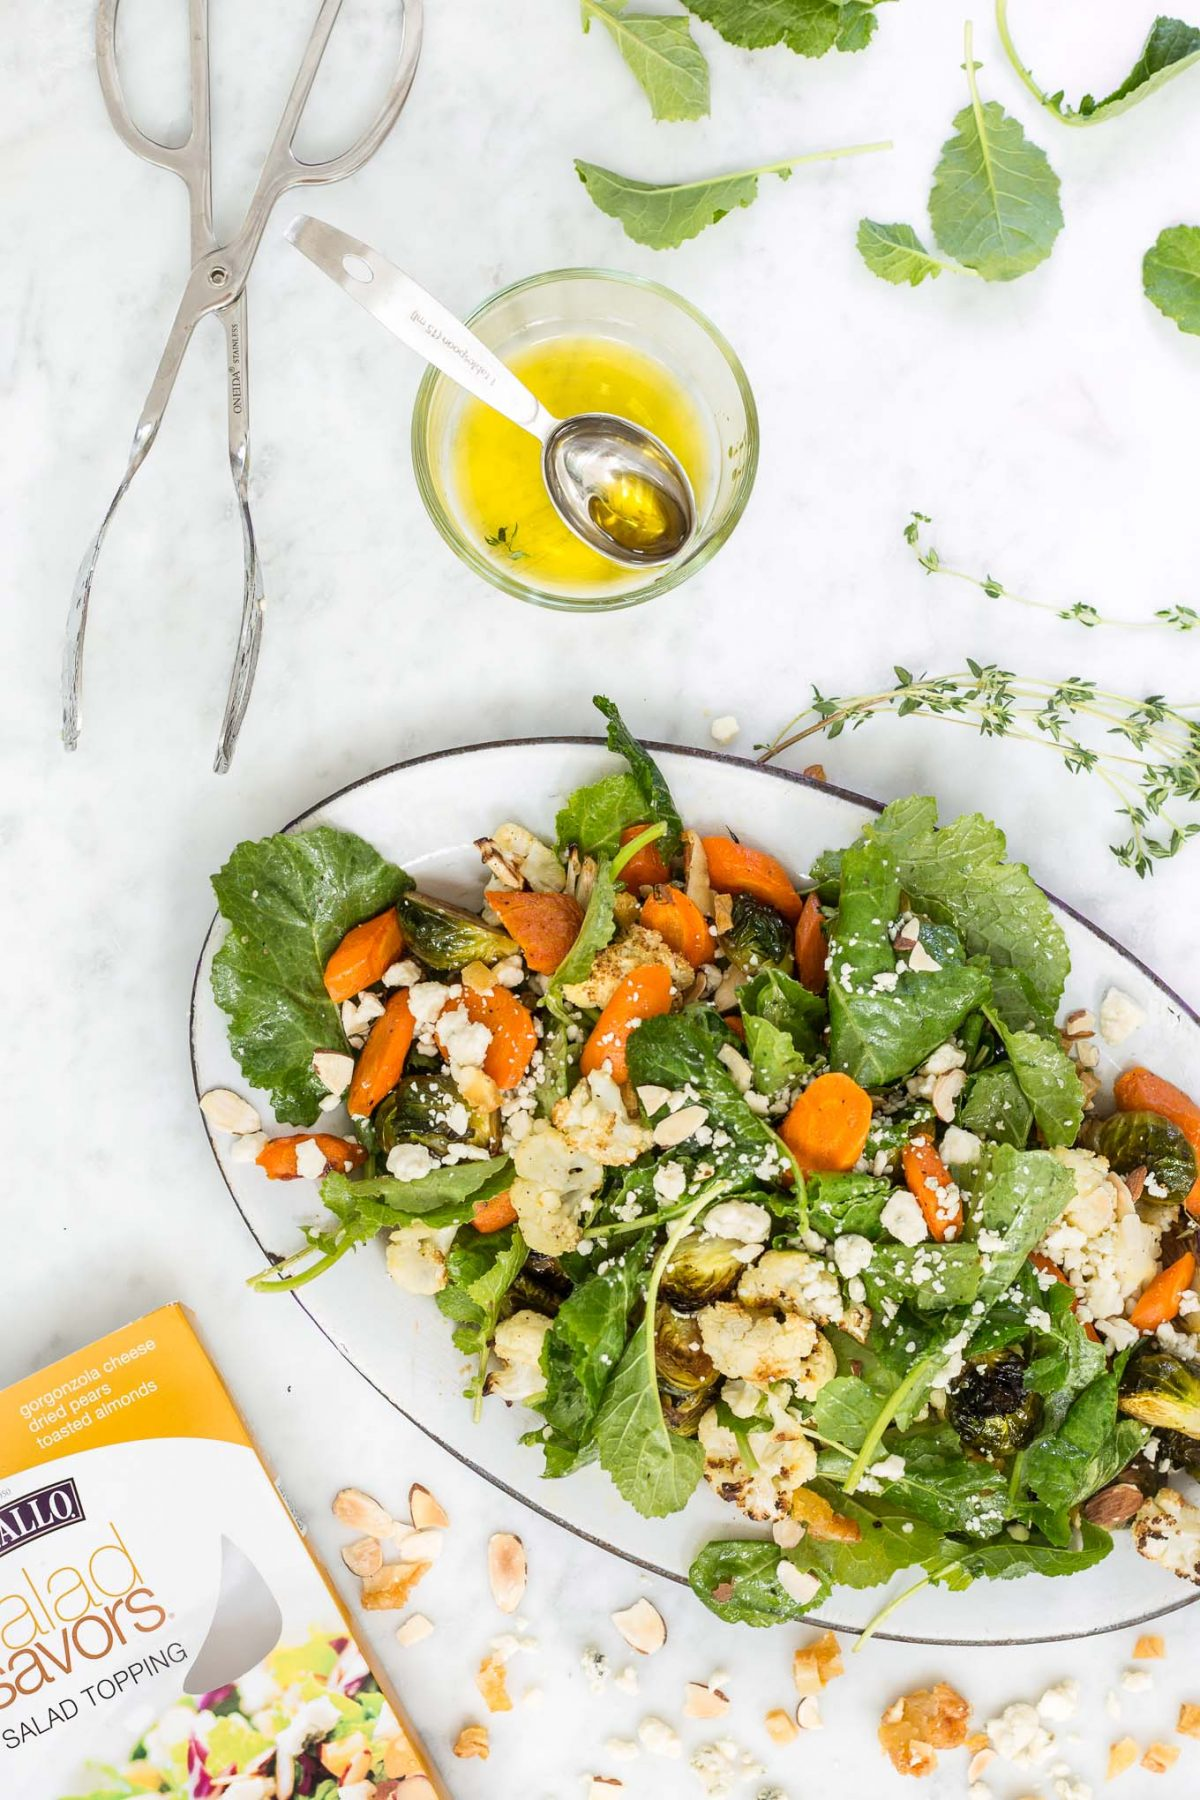 Harvest Salad with Pear and Gorgonzola